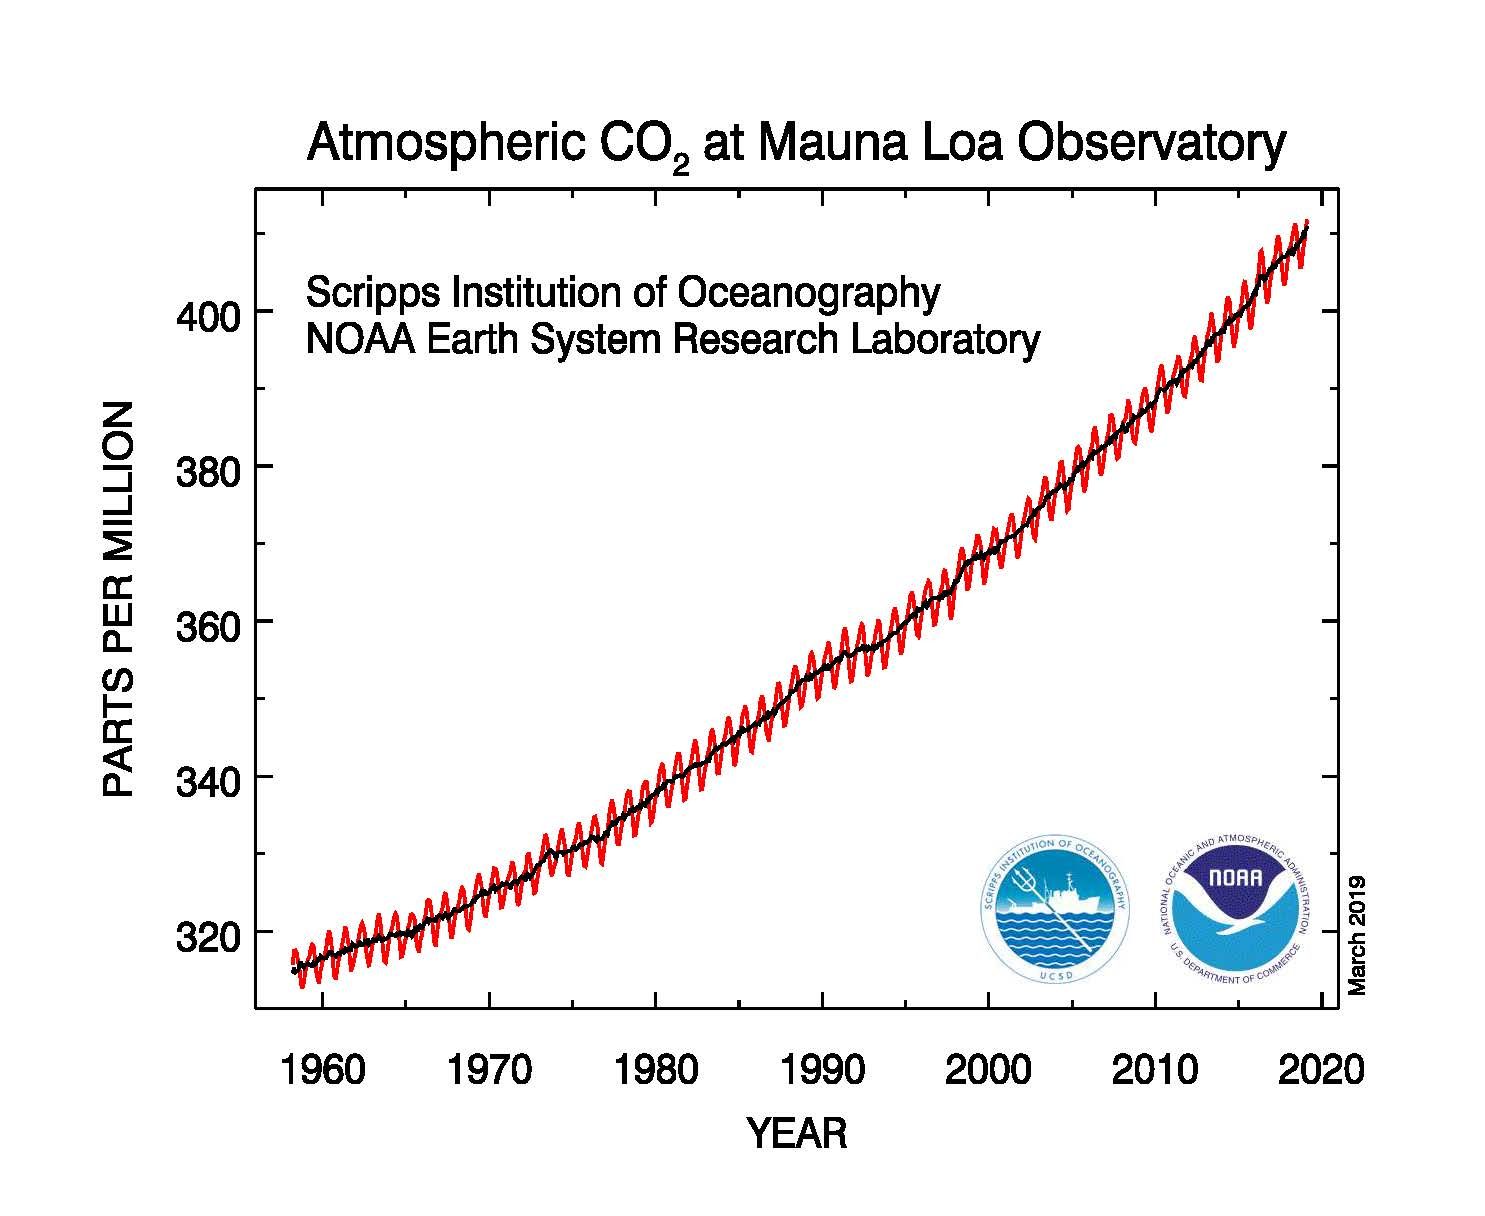 A 2019 graph showing the steadily increasing levels of atmospheric carbon dioxide (in parts per million) observed at NOAA's Mauna Loa Observatory over the course of nearly 60 years.